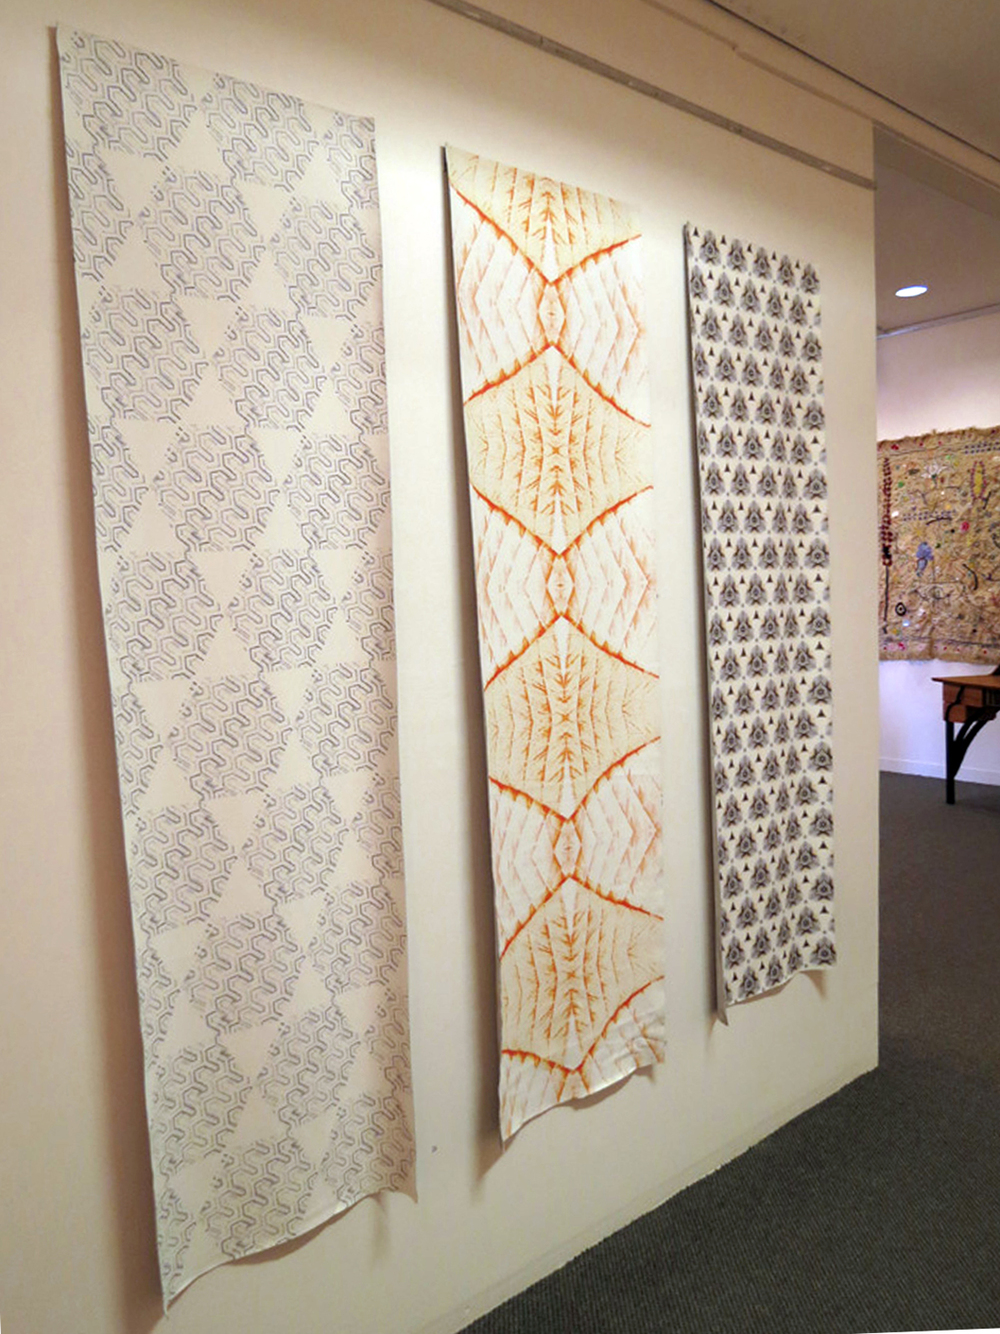 26 - 28.  Wanders - crossstitch , Richelle Doney, leather wallpaper, $730 per drop